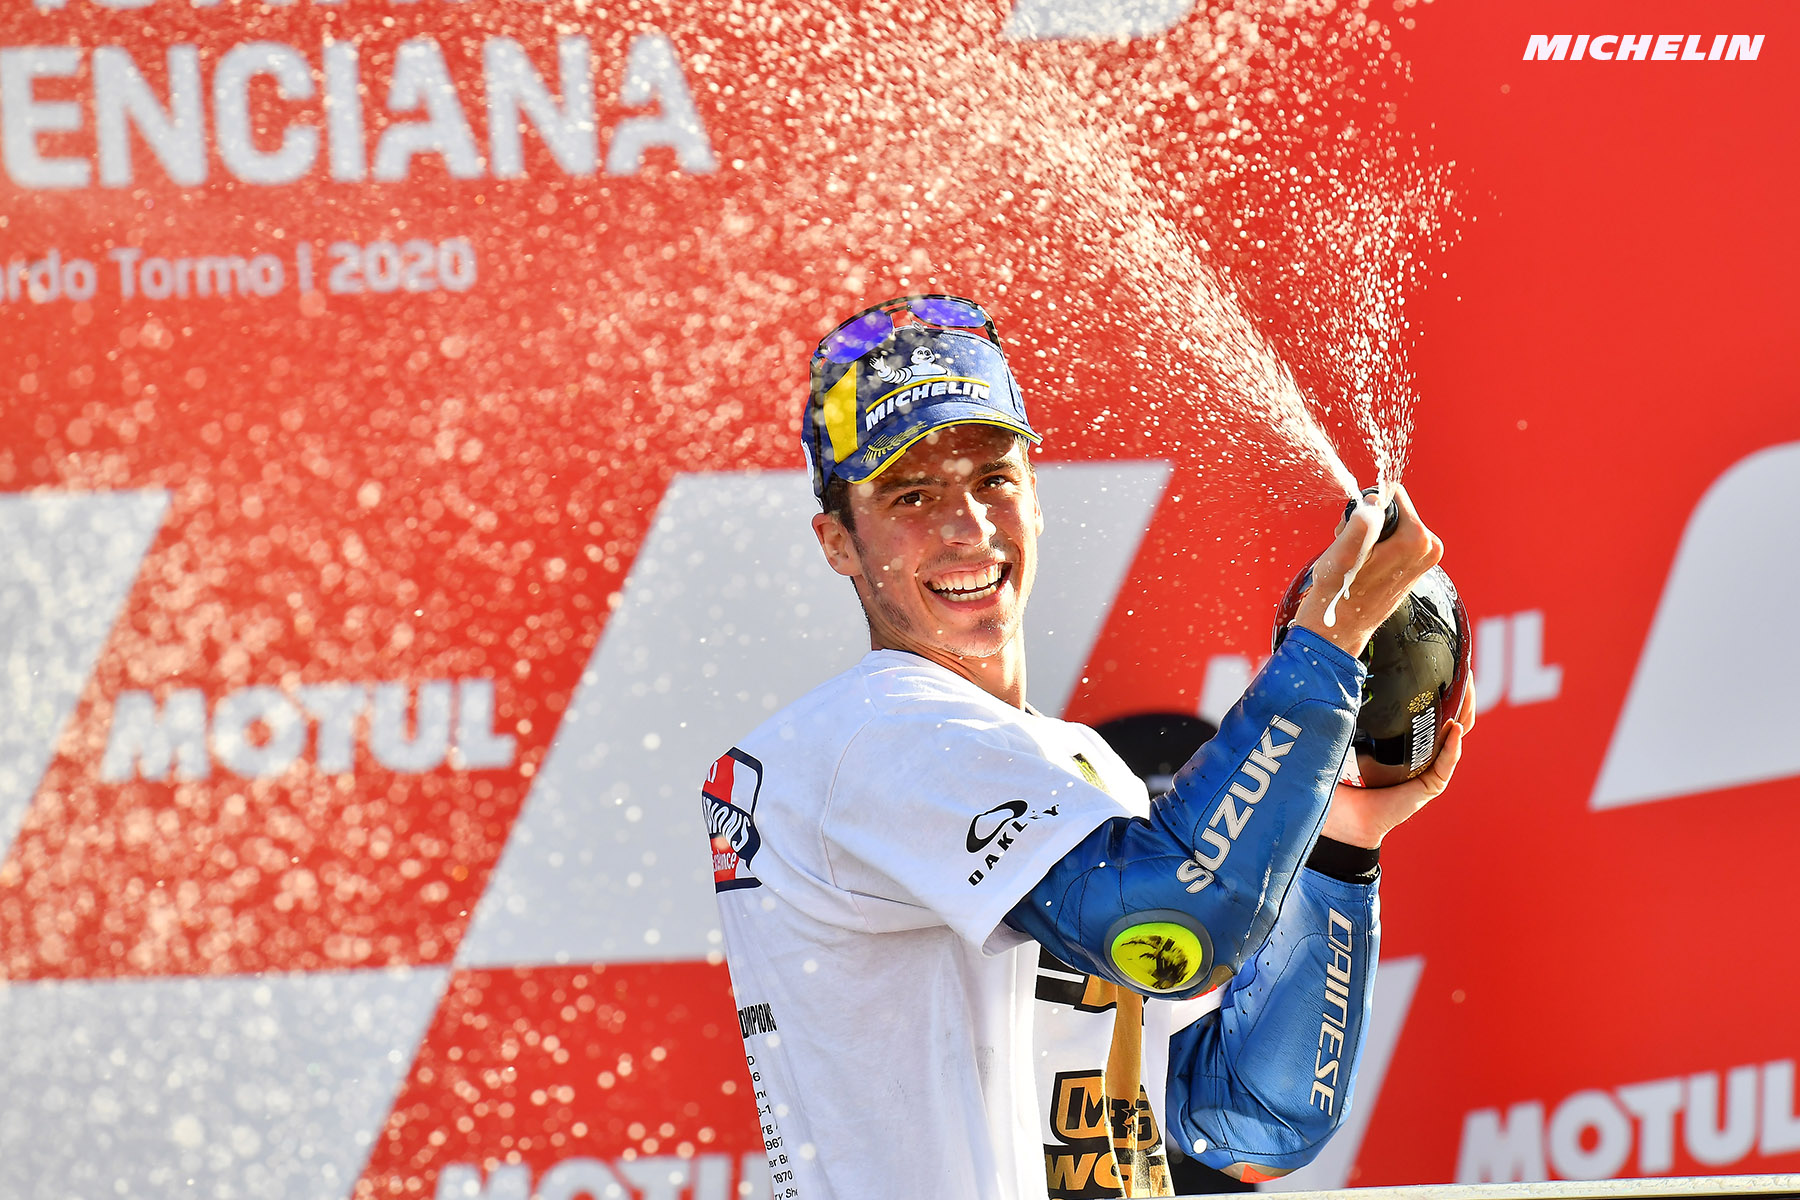 MotoGP™: Valencia honours for Morbidelli, as Mir clinches title!